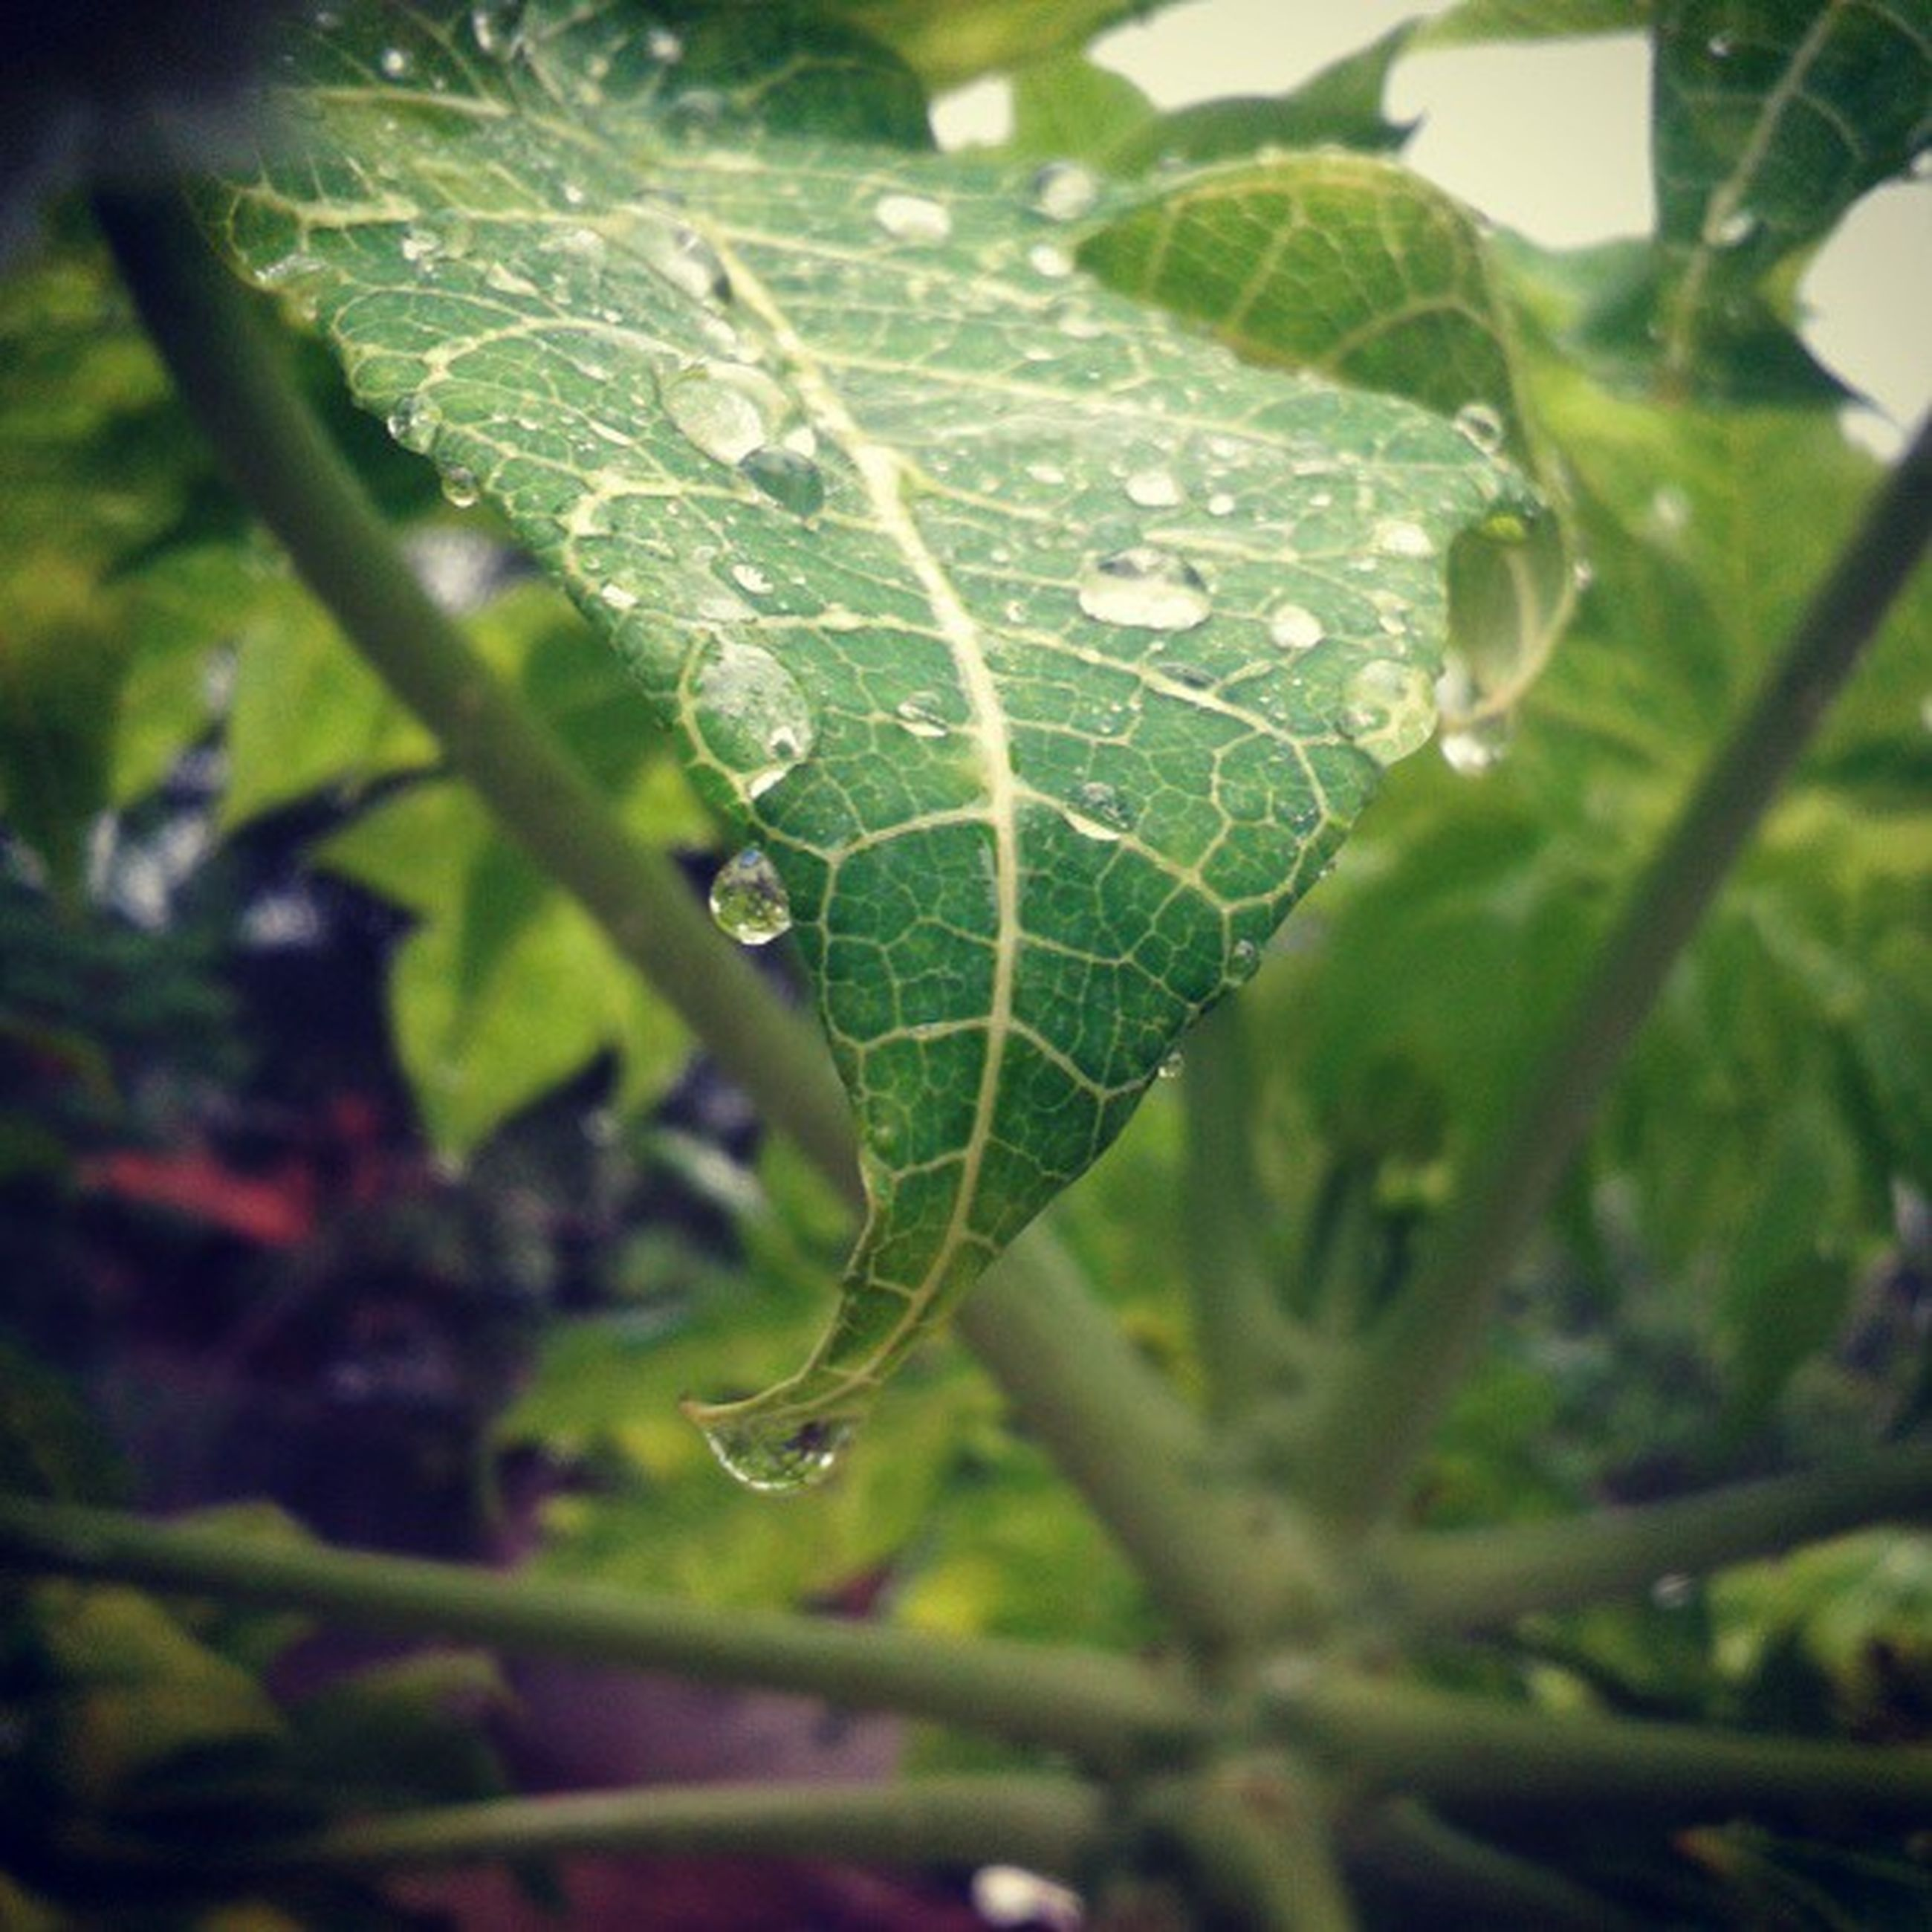 drop, leaf, close-up, focus on foreground, green color, water, wet, spider web, nature, plant, fragility, growth, selective focus, dew, beauty in nature, leaf vein, day, insect, outdoors, no people